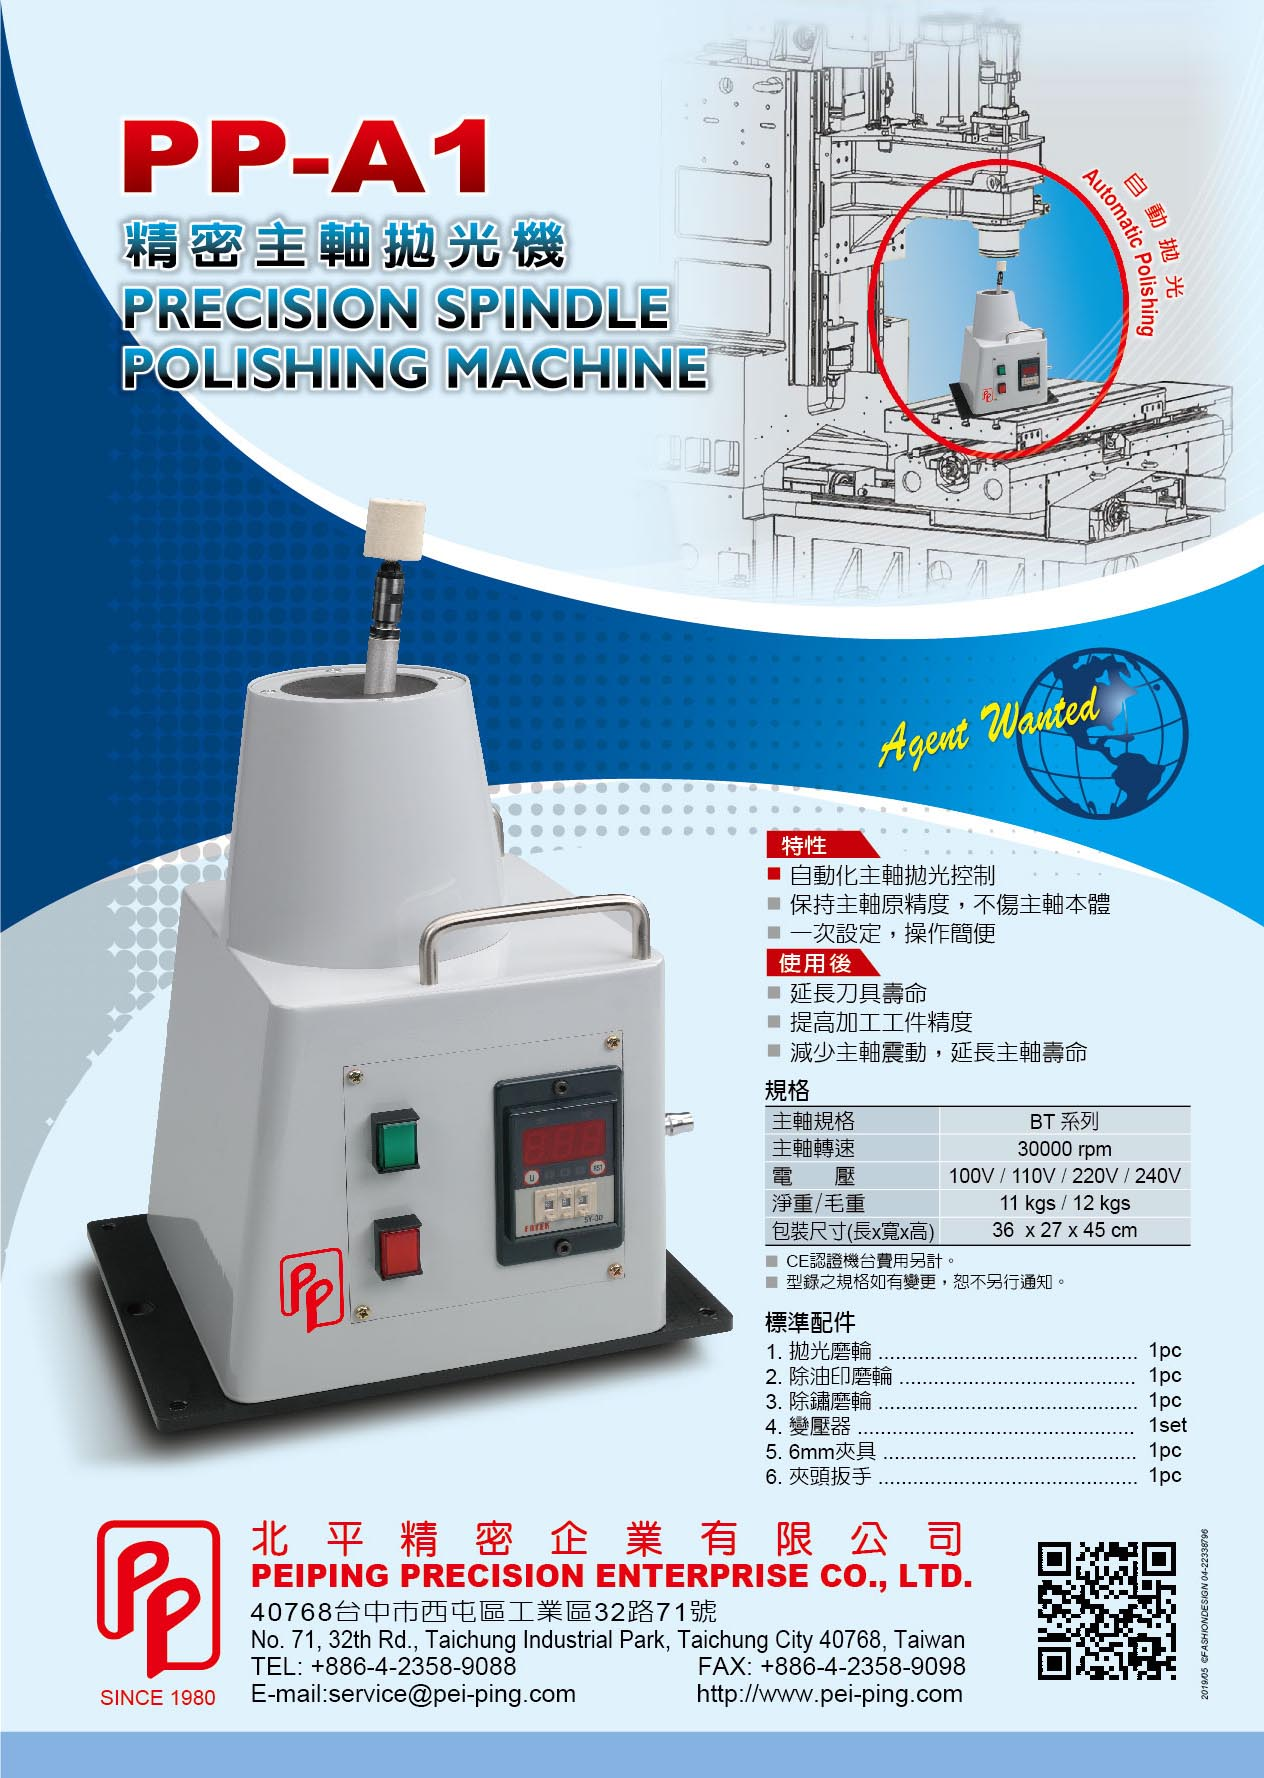 Precision Spindle Polishing Machine